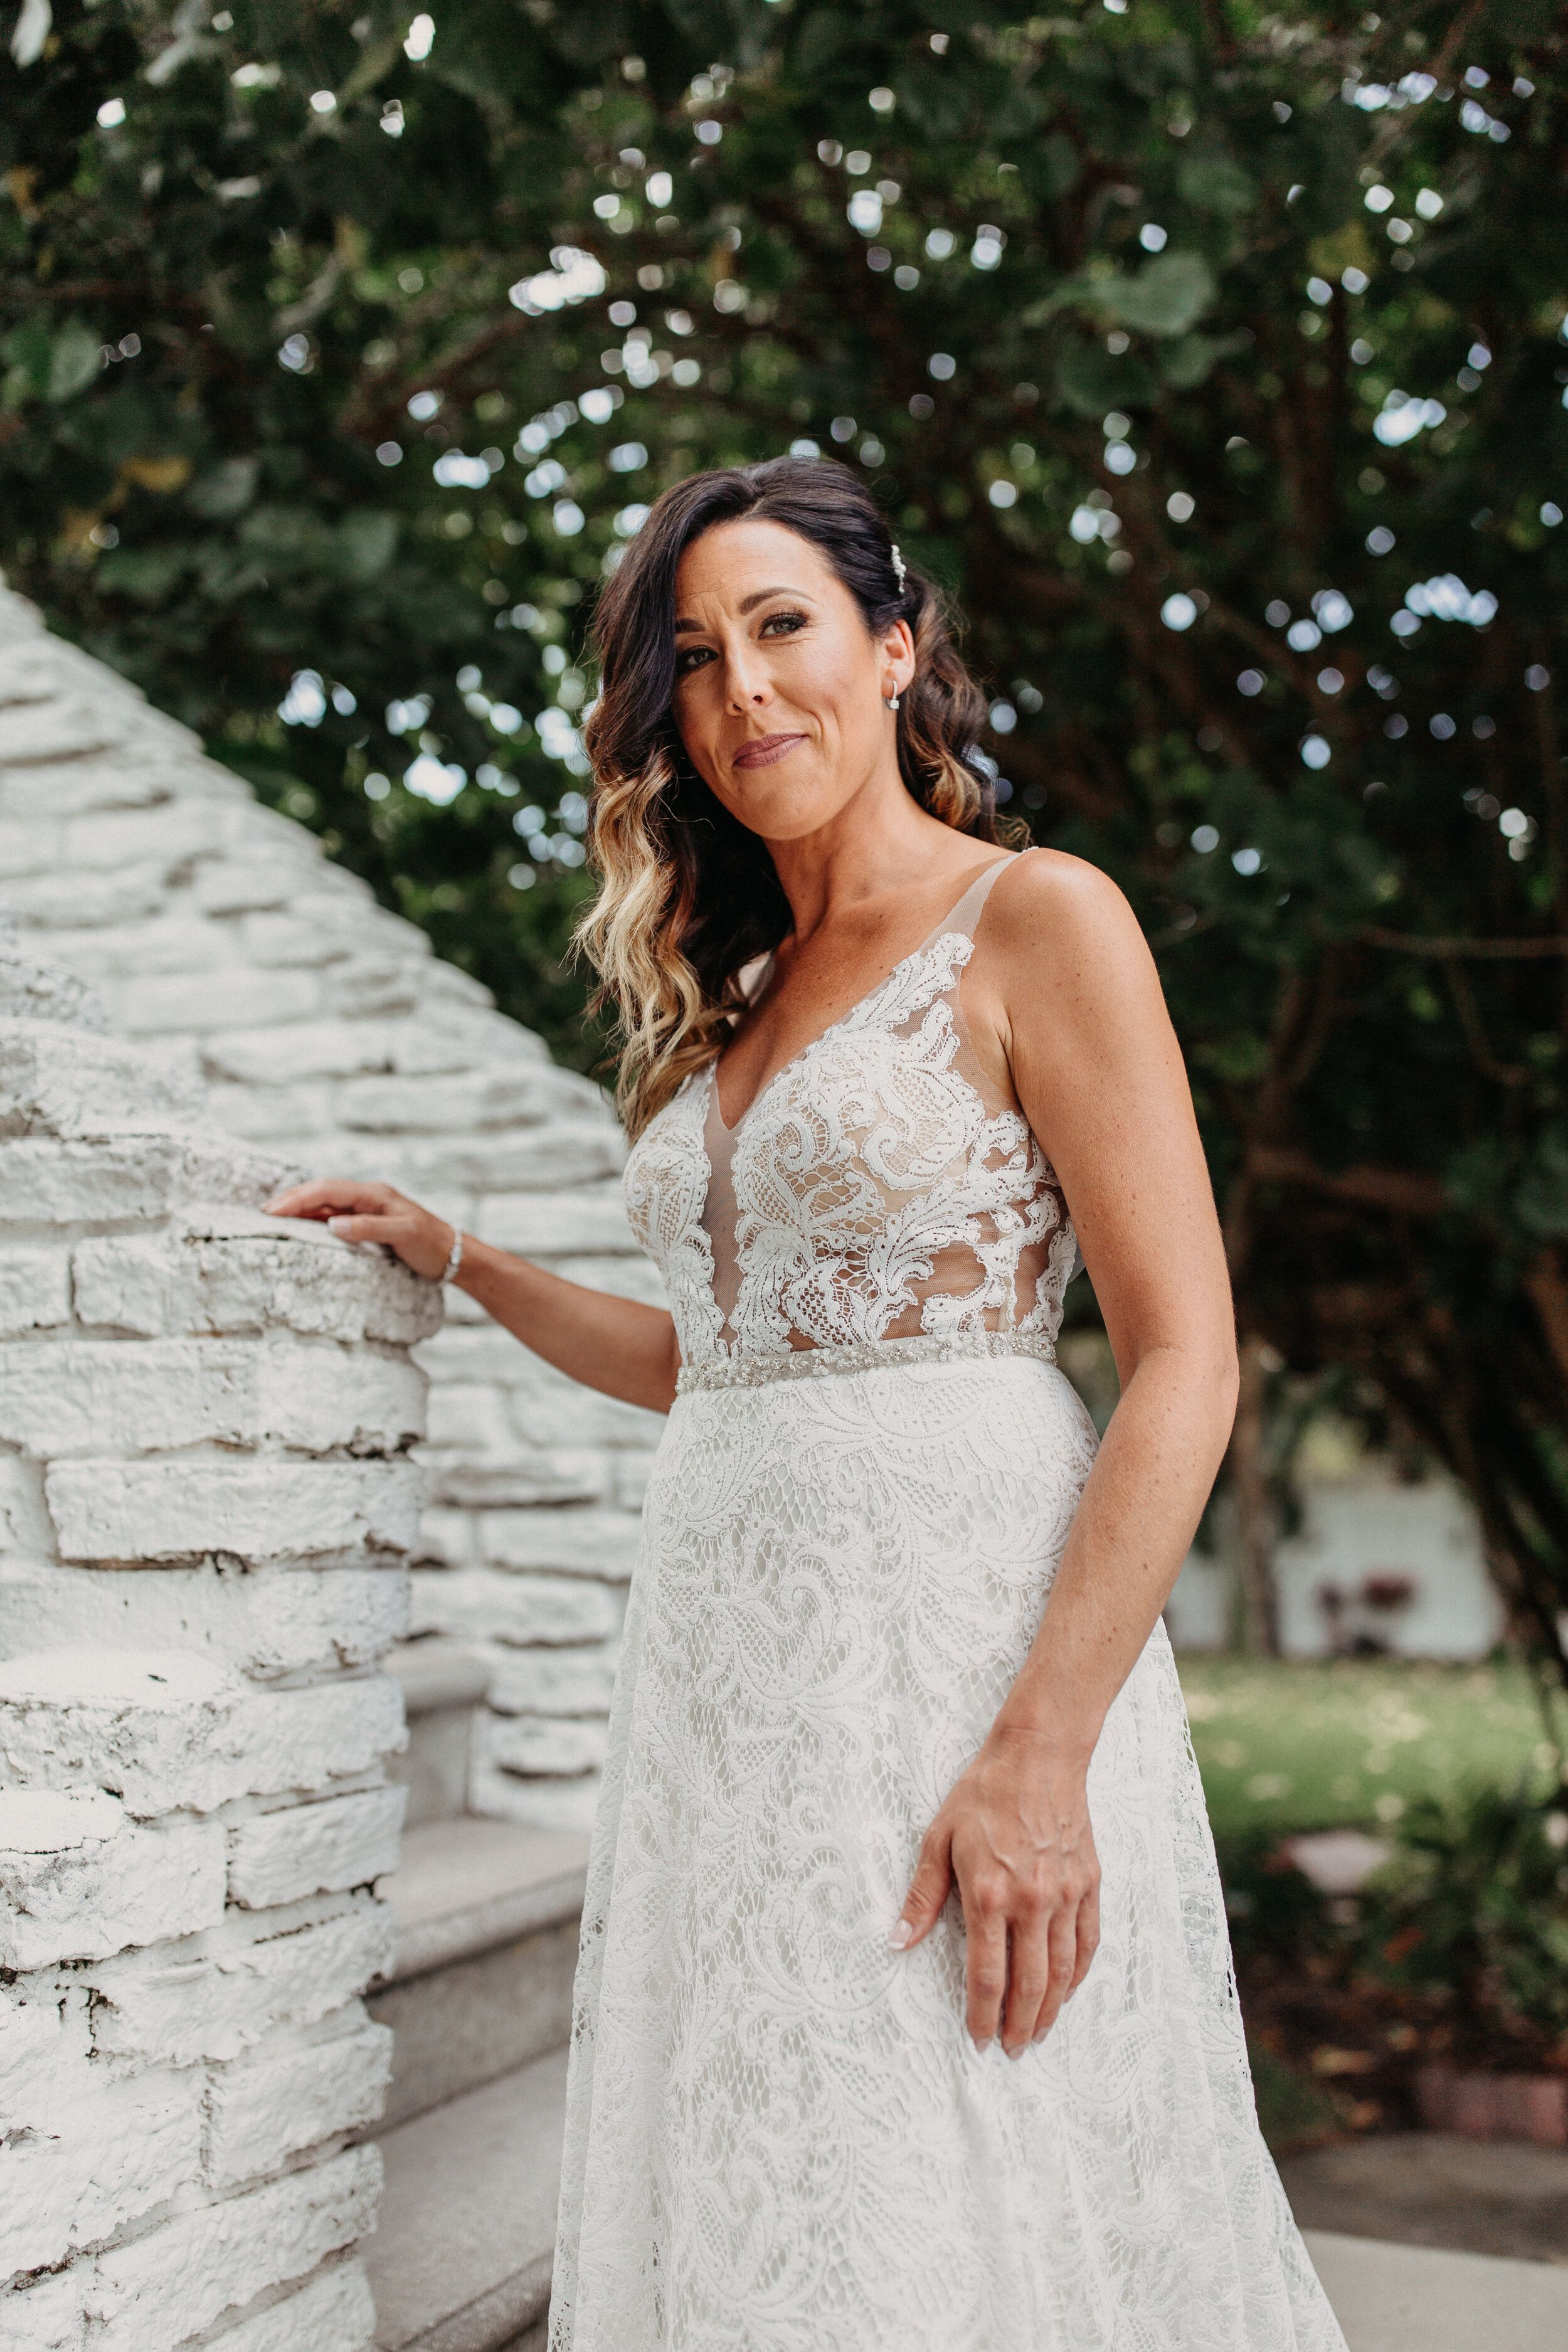 Top Sarasota Bridal Wedding Trends Of 2020 Katelyn Prisco Photography Stunning Dresses Wedding Dresses Wedding Dresses Lace